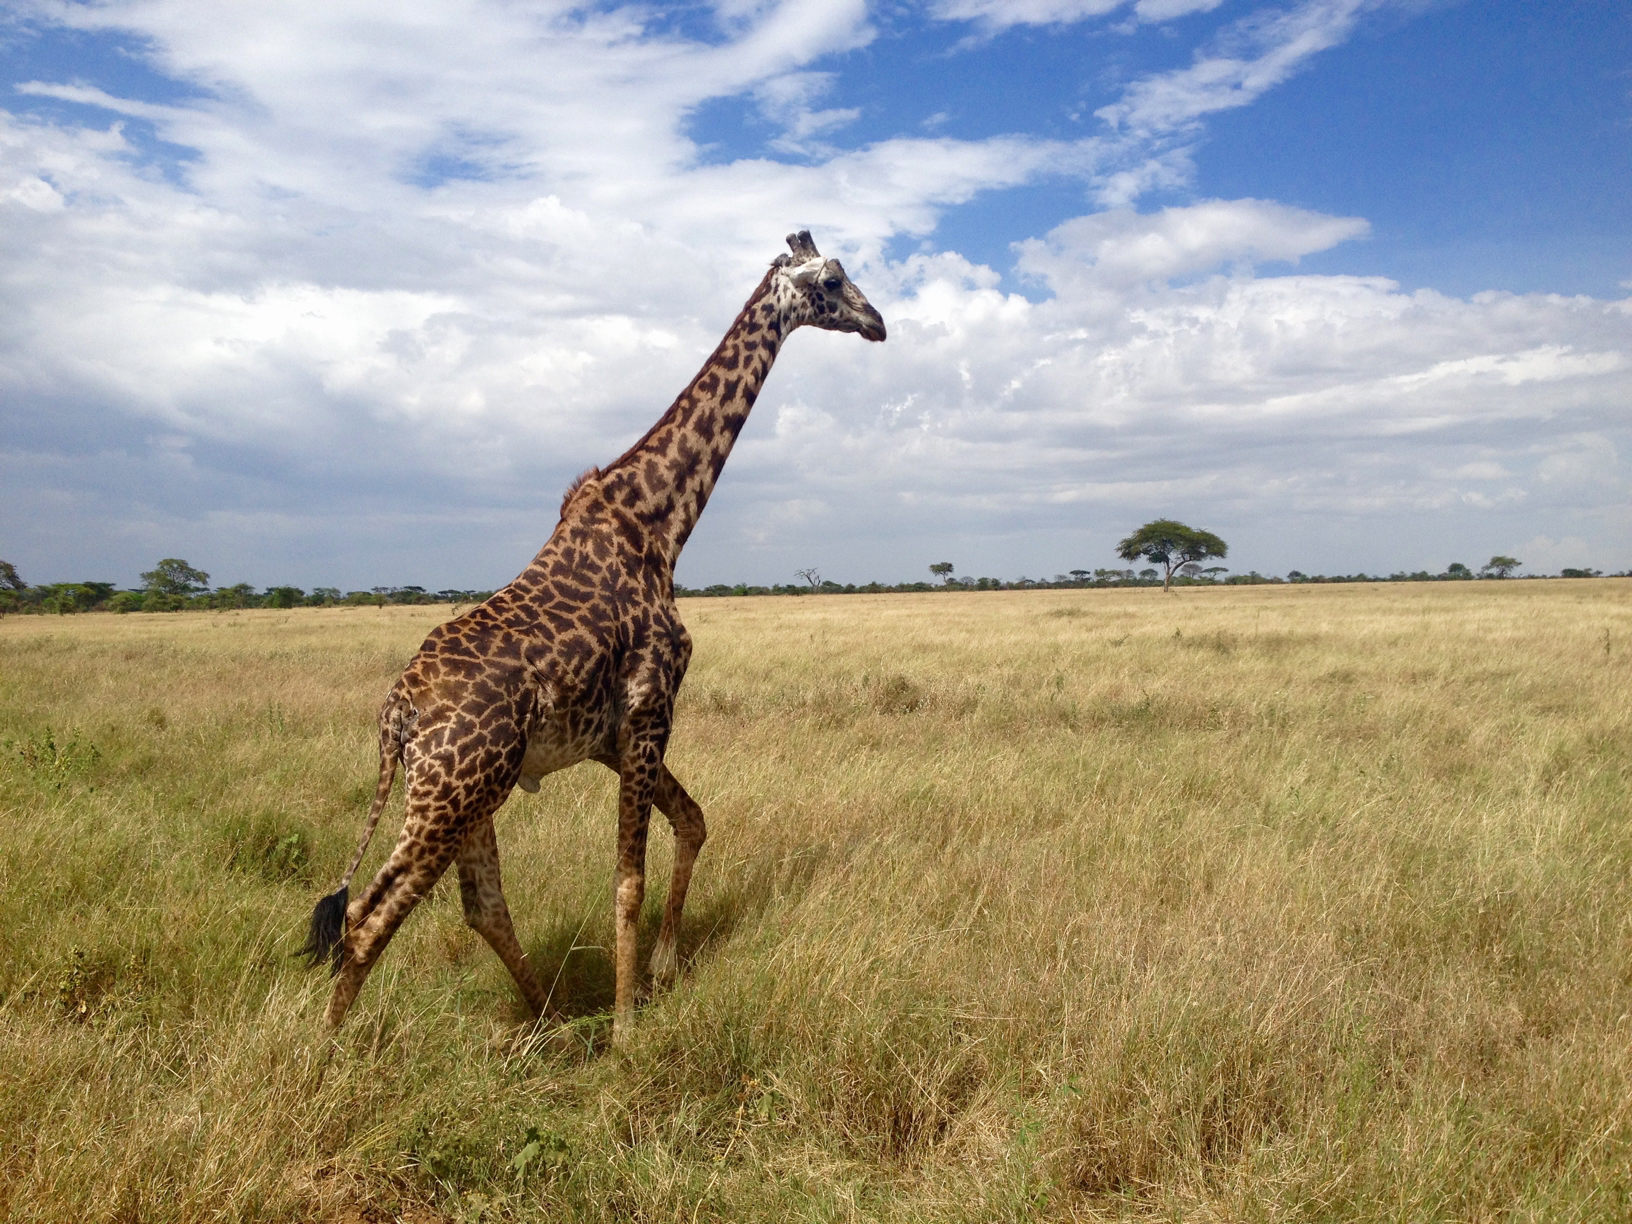 Photo taken by a student in Tanzania!